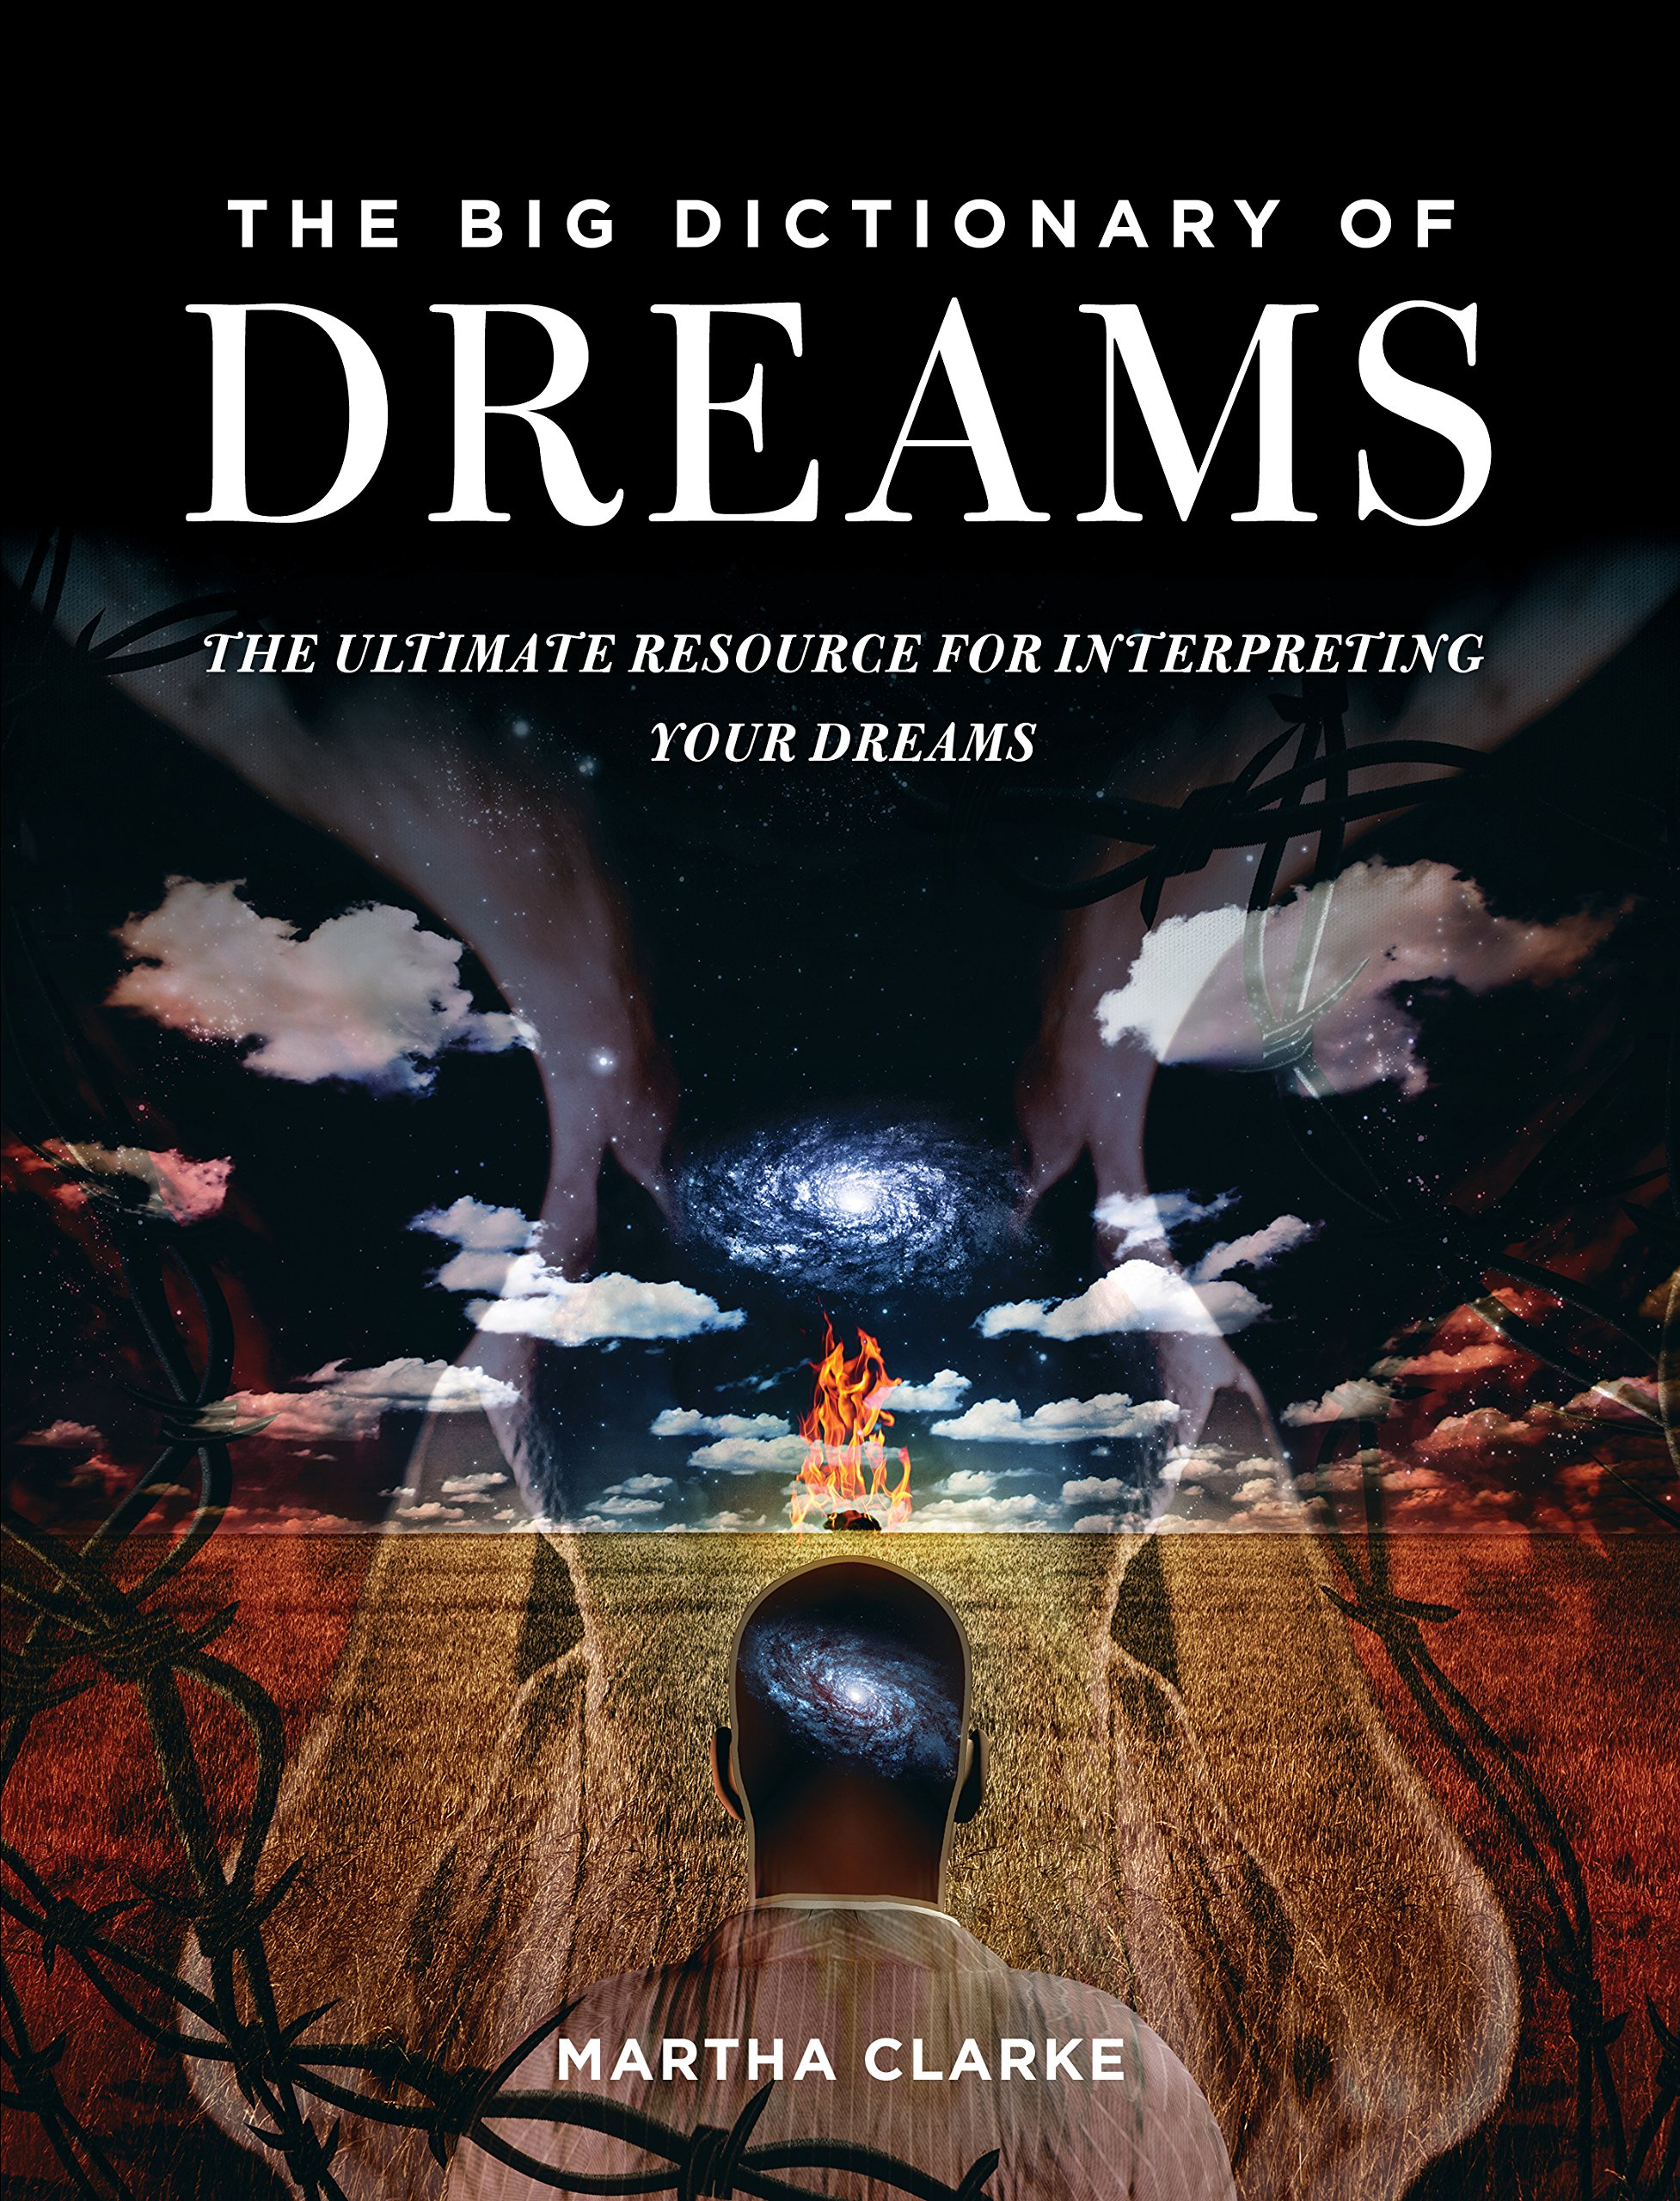 The dream book Tablet, what dreams the tablet in a dream to see 39